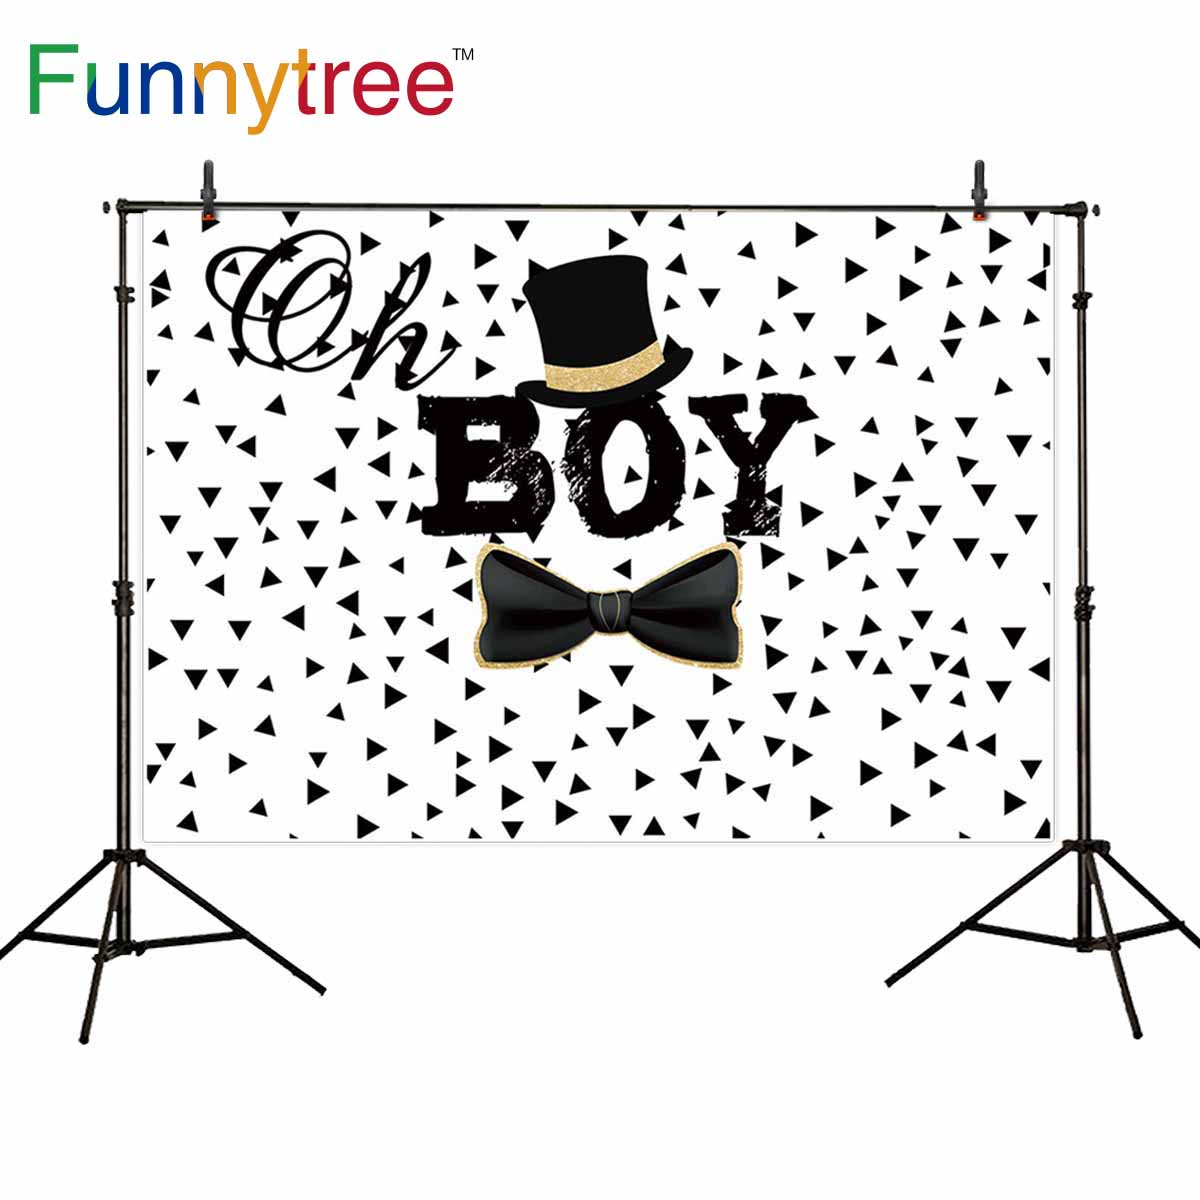 Funnytree background for photo white Hat bow <font><b>boy</b></font> <font><b>baby</b></font> <font><b>shower</b></font> birthday <font><b>backdrops</b></font> photography photocall photobooth photophone image